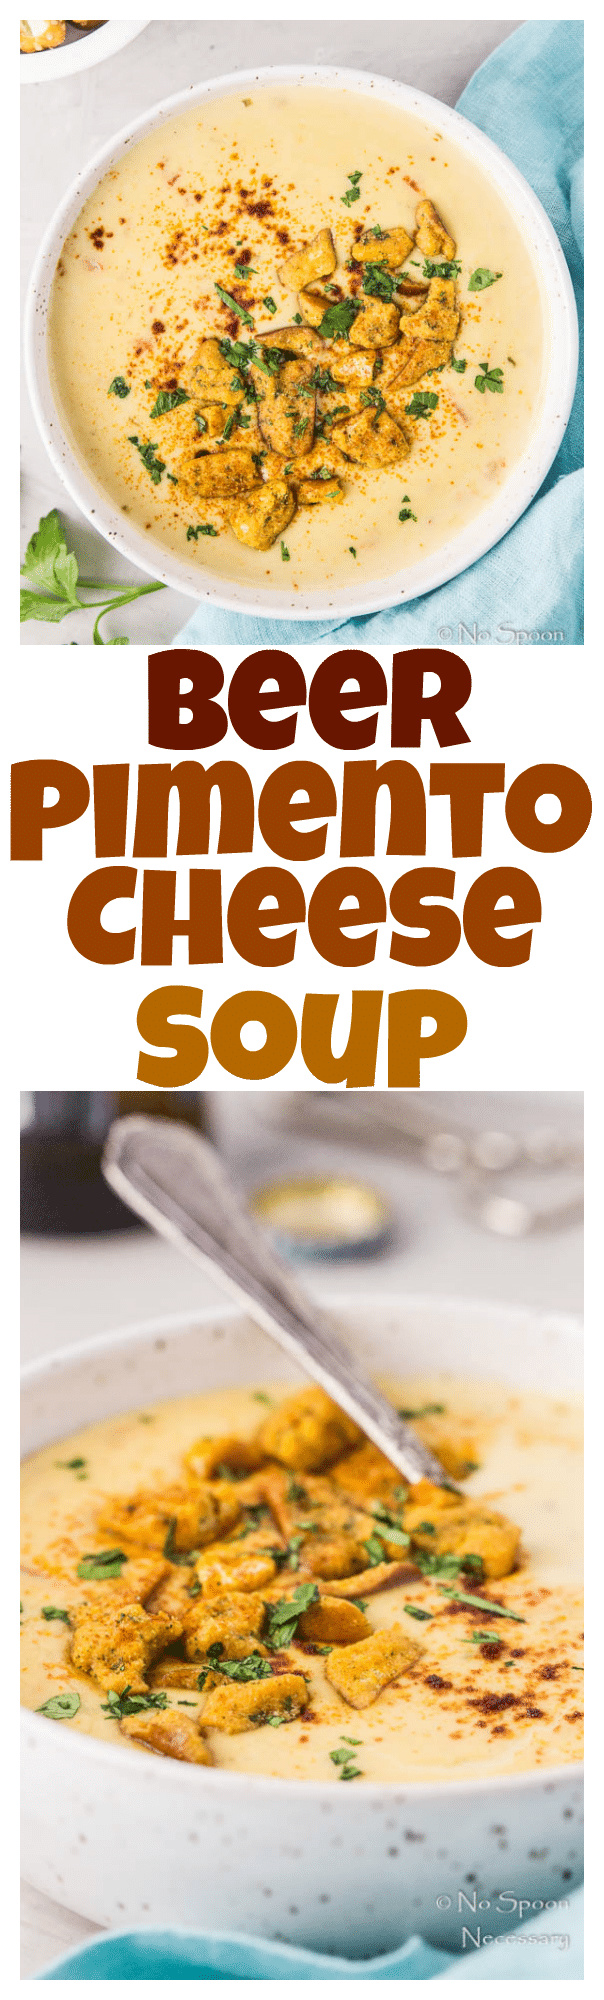 Beer Pimento Cheese Soup